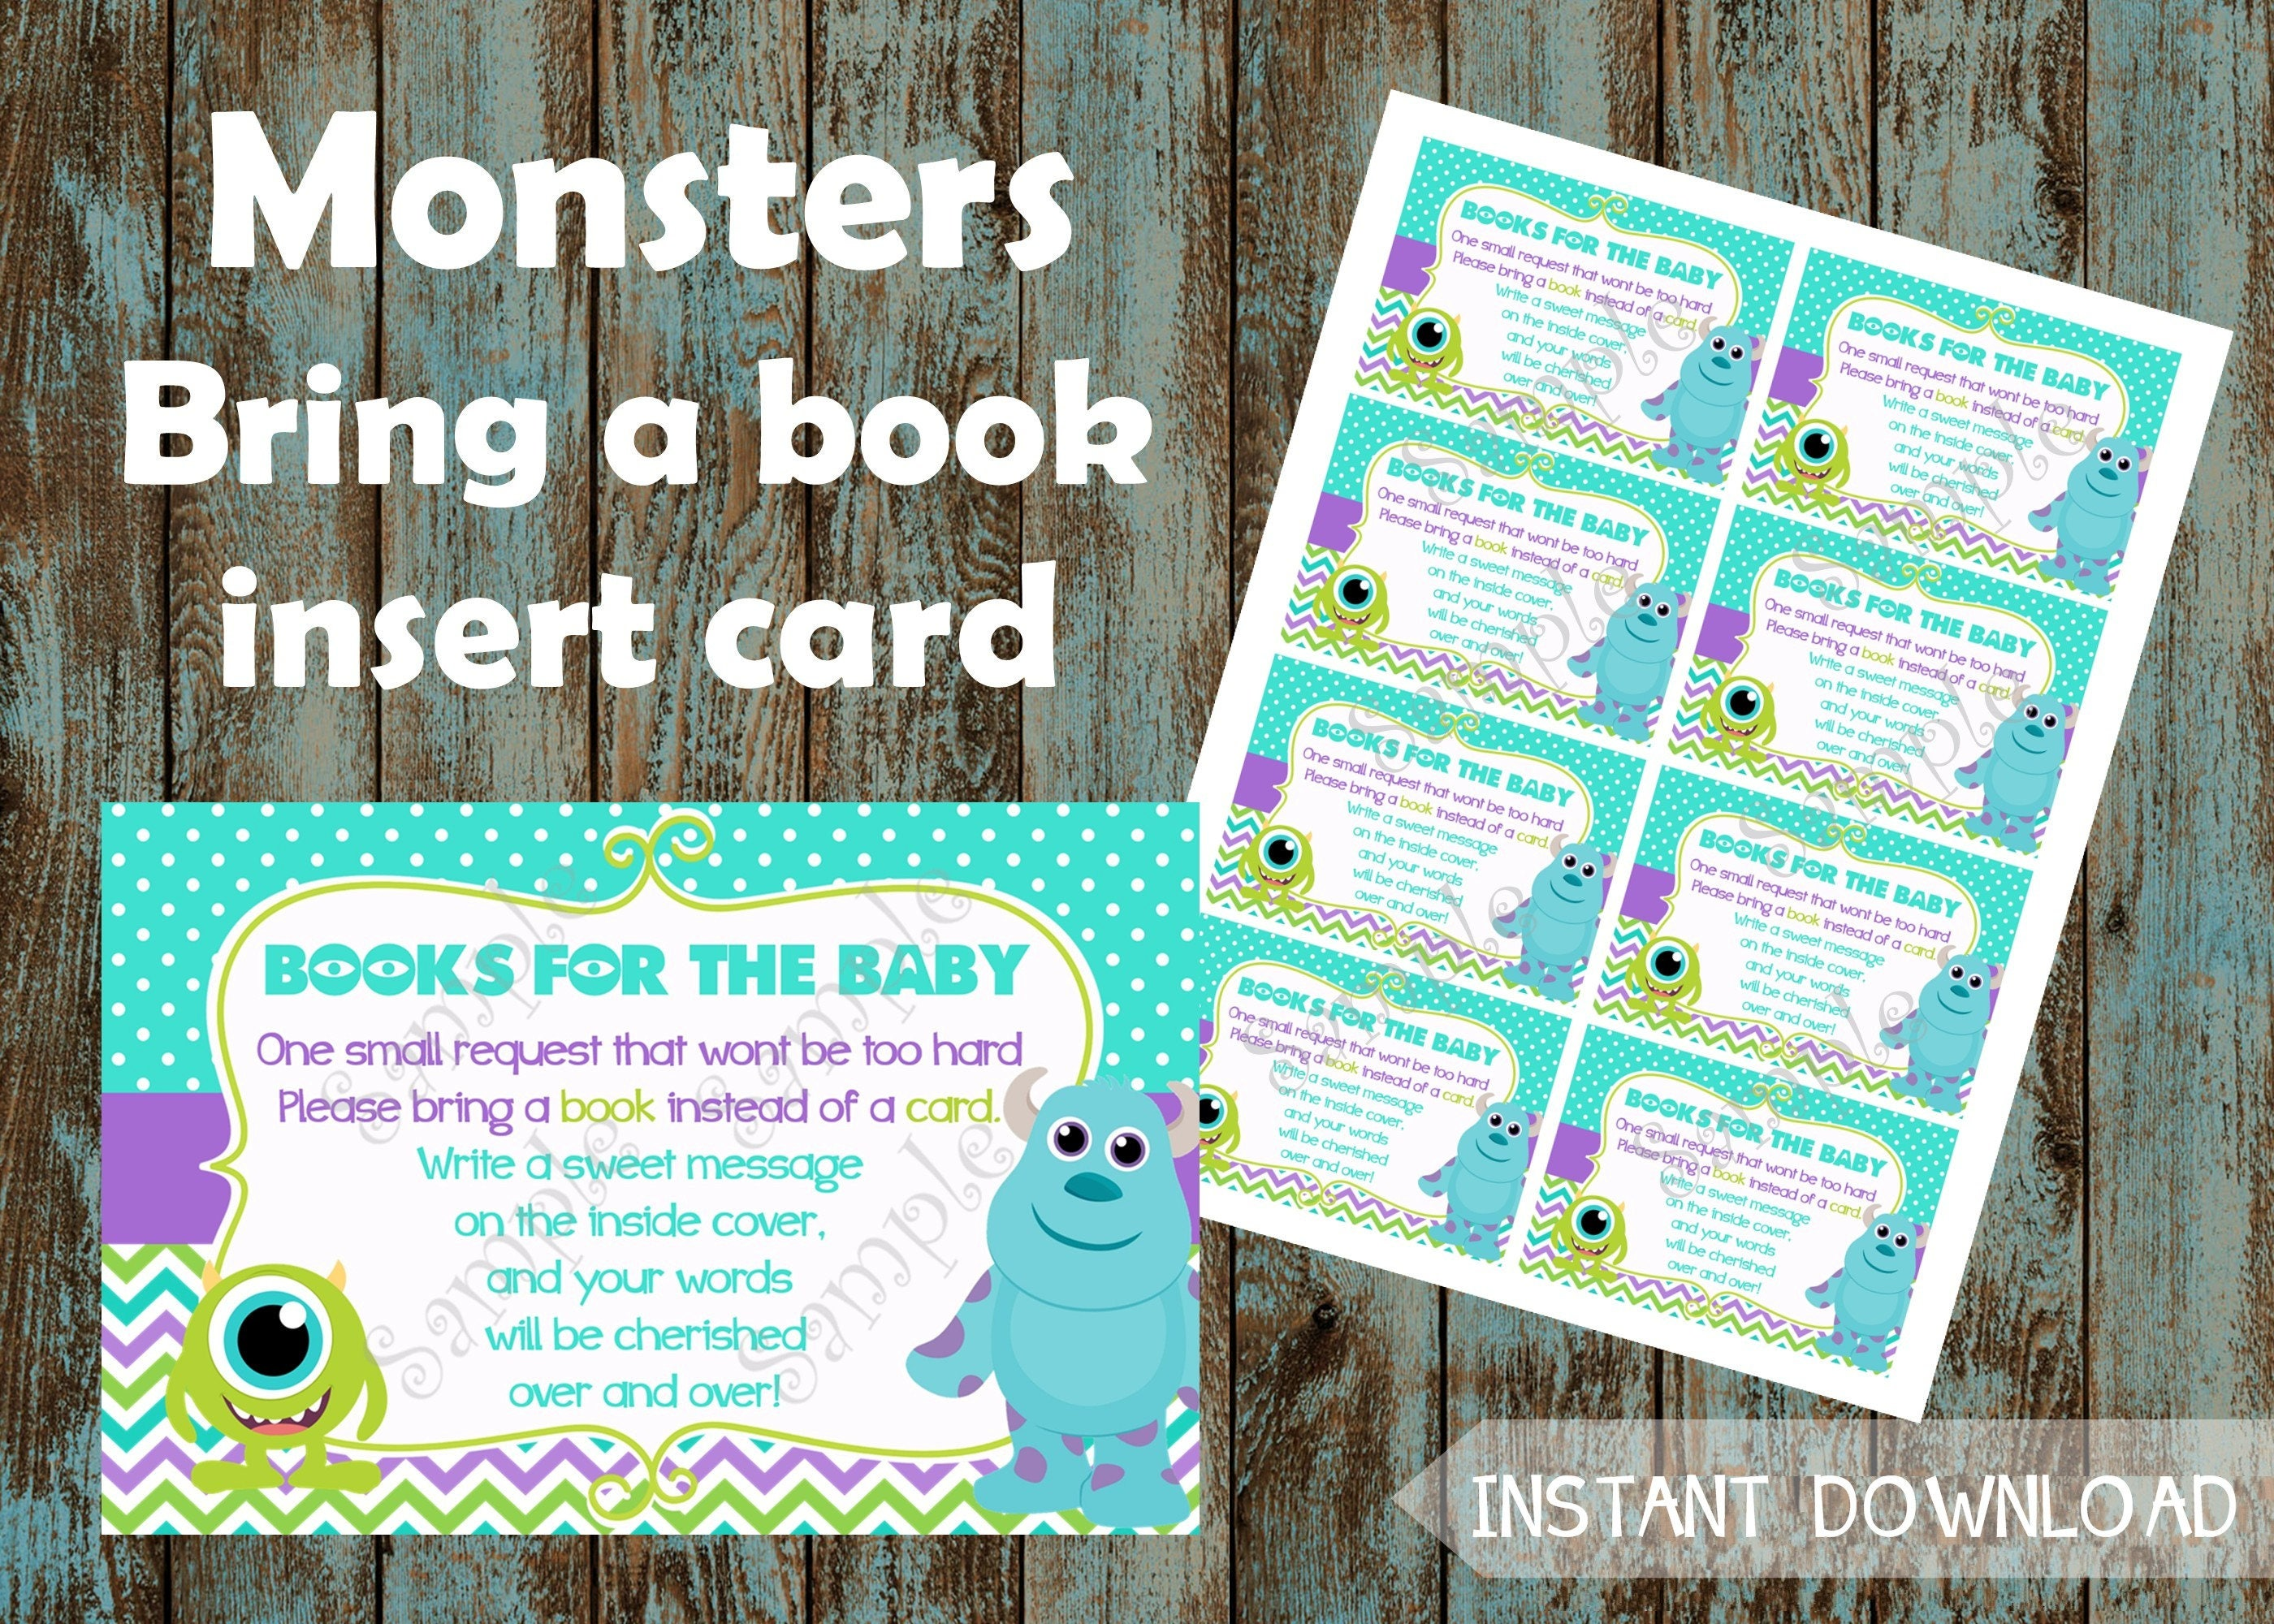 Monsters Inc Books for baby Monsters Inc Insert Card Books